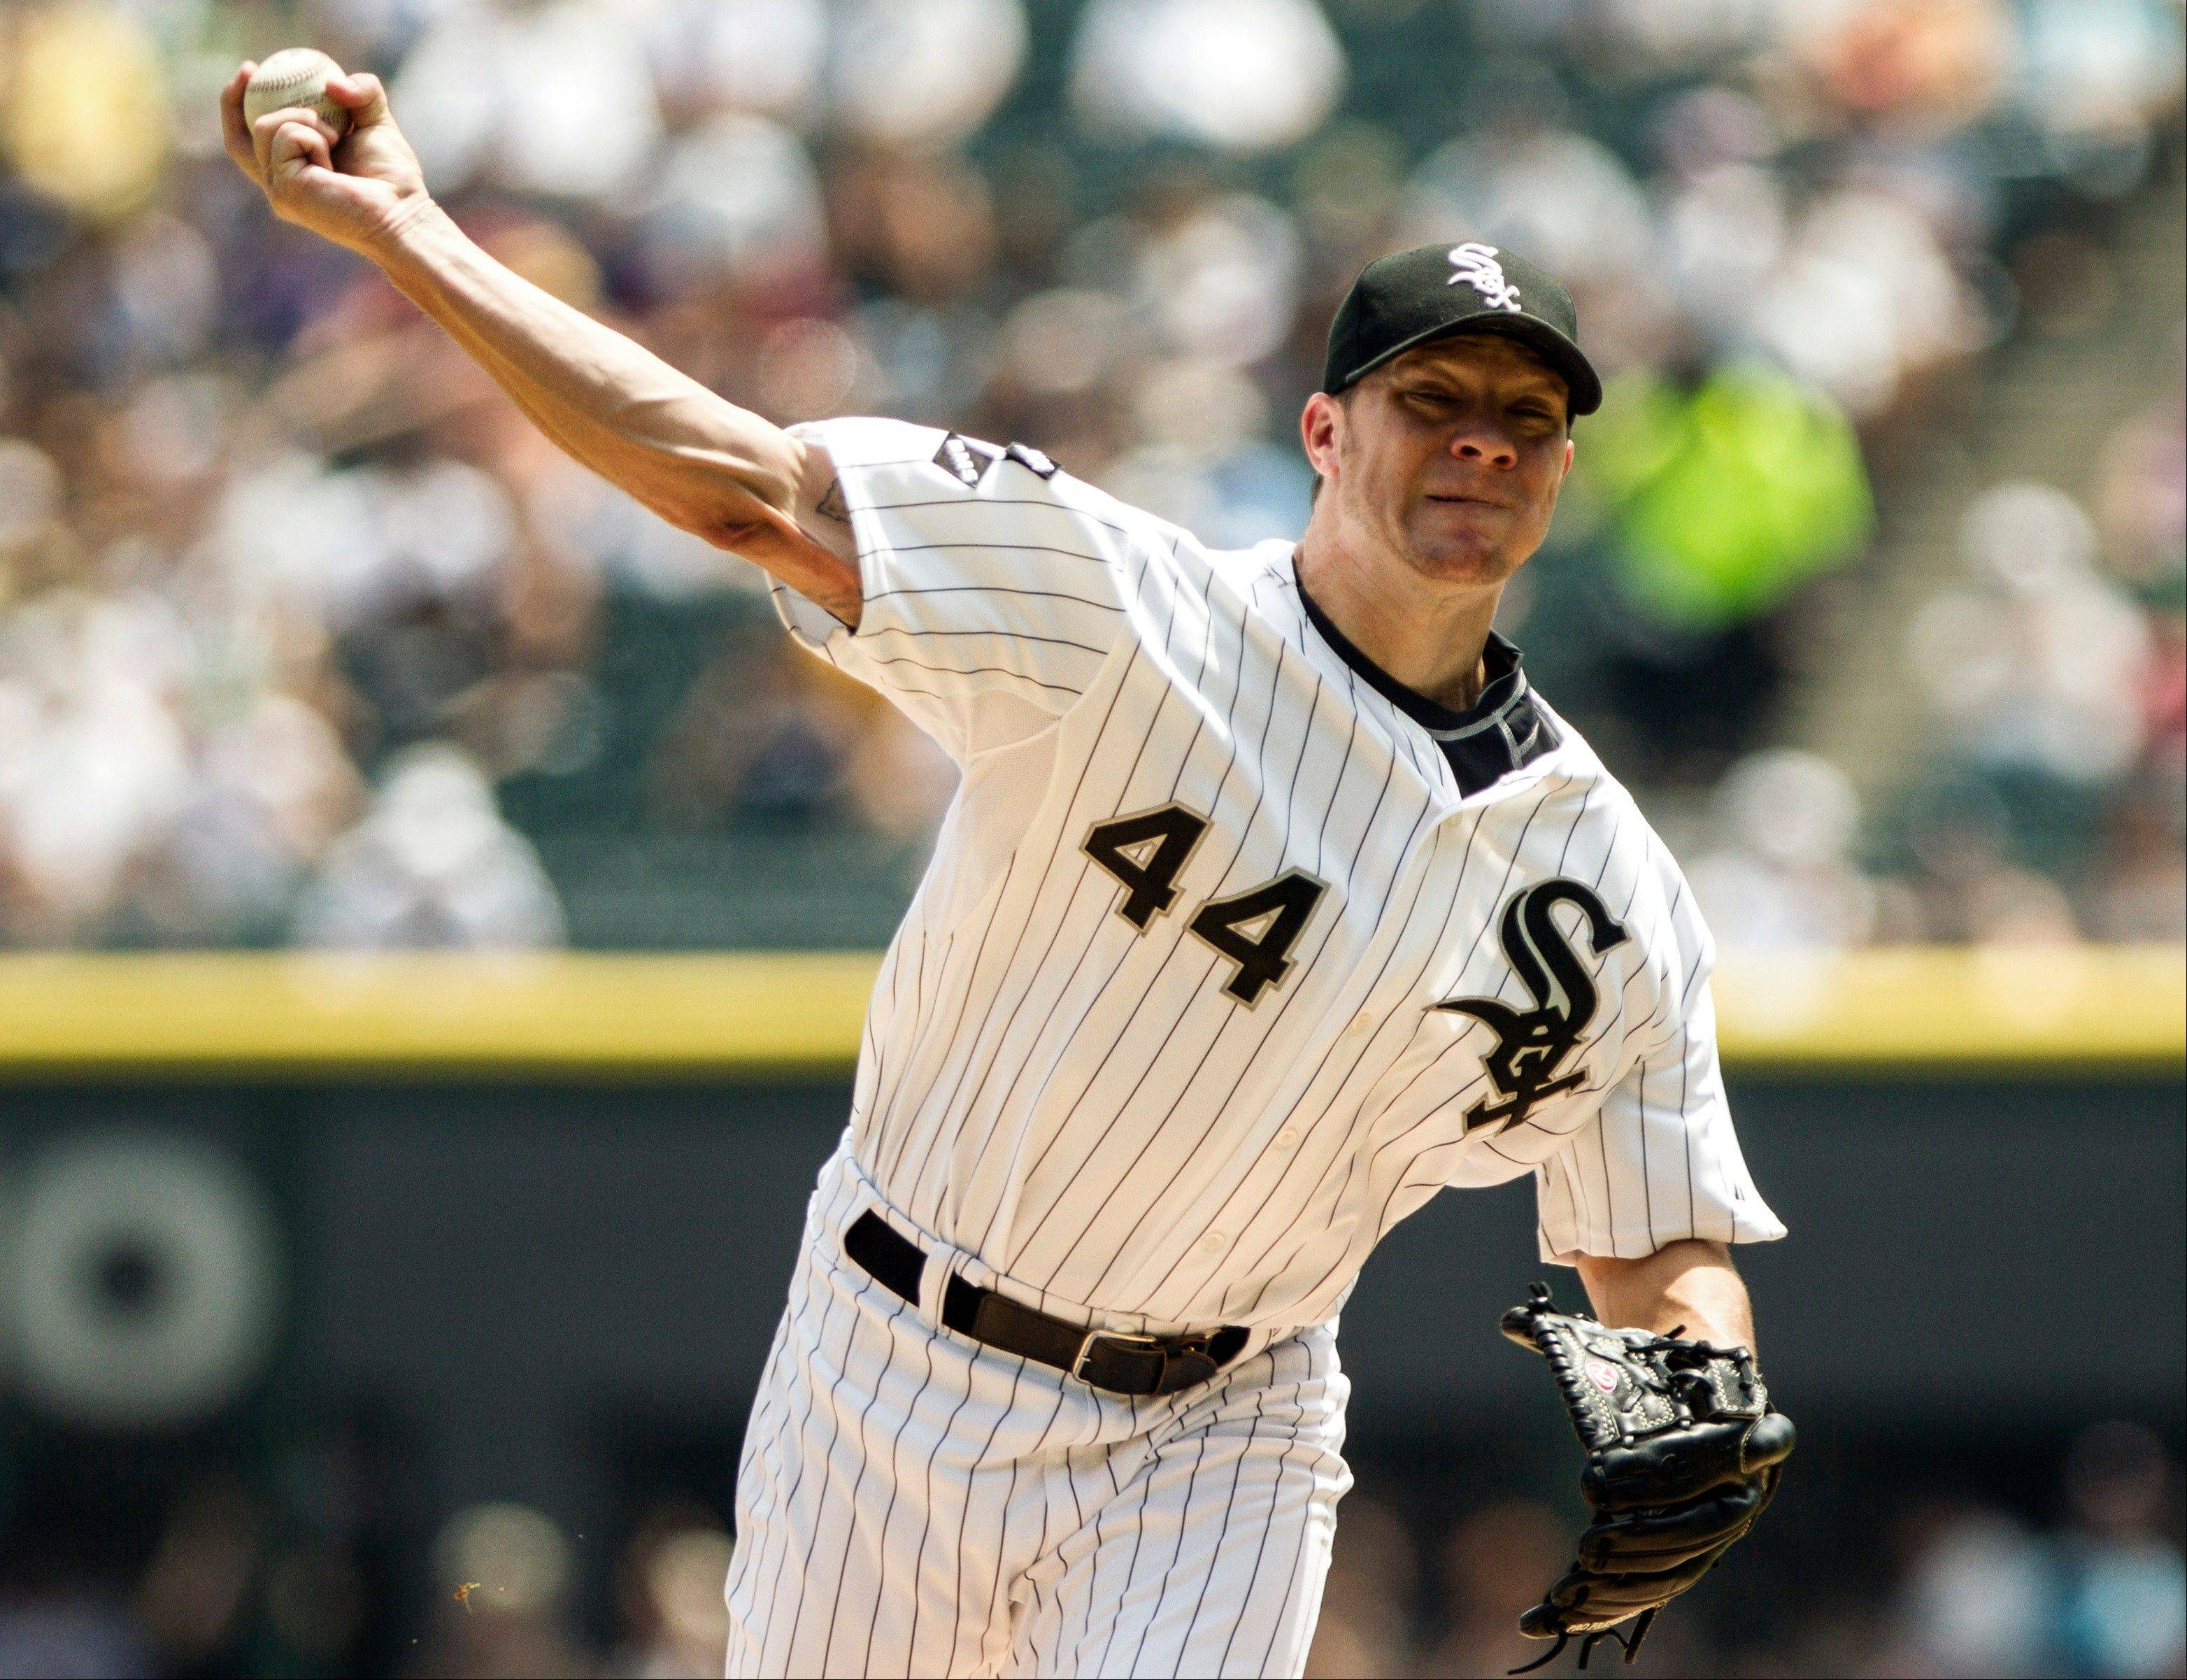 White Sox starter Jake Peavy improved to 8-7 after struggling through 6 innings to beat the Twins on Wednesday.